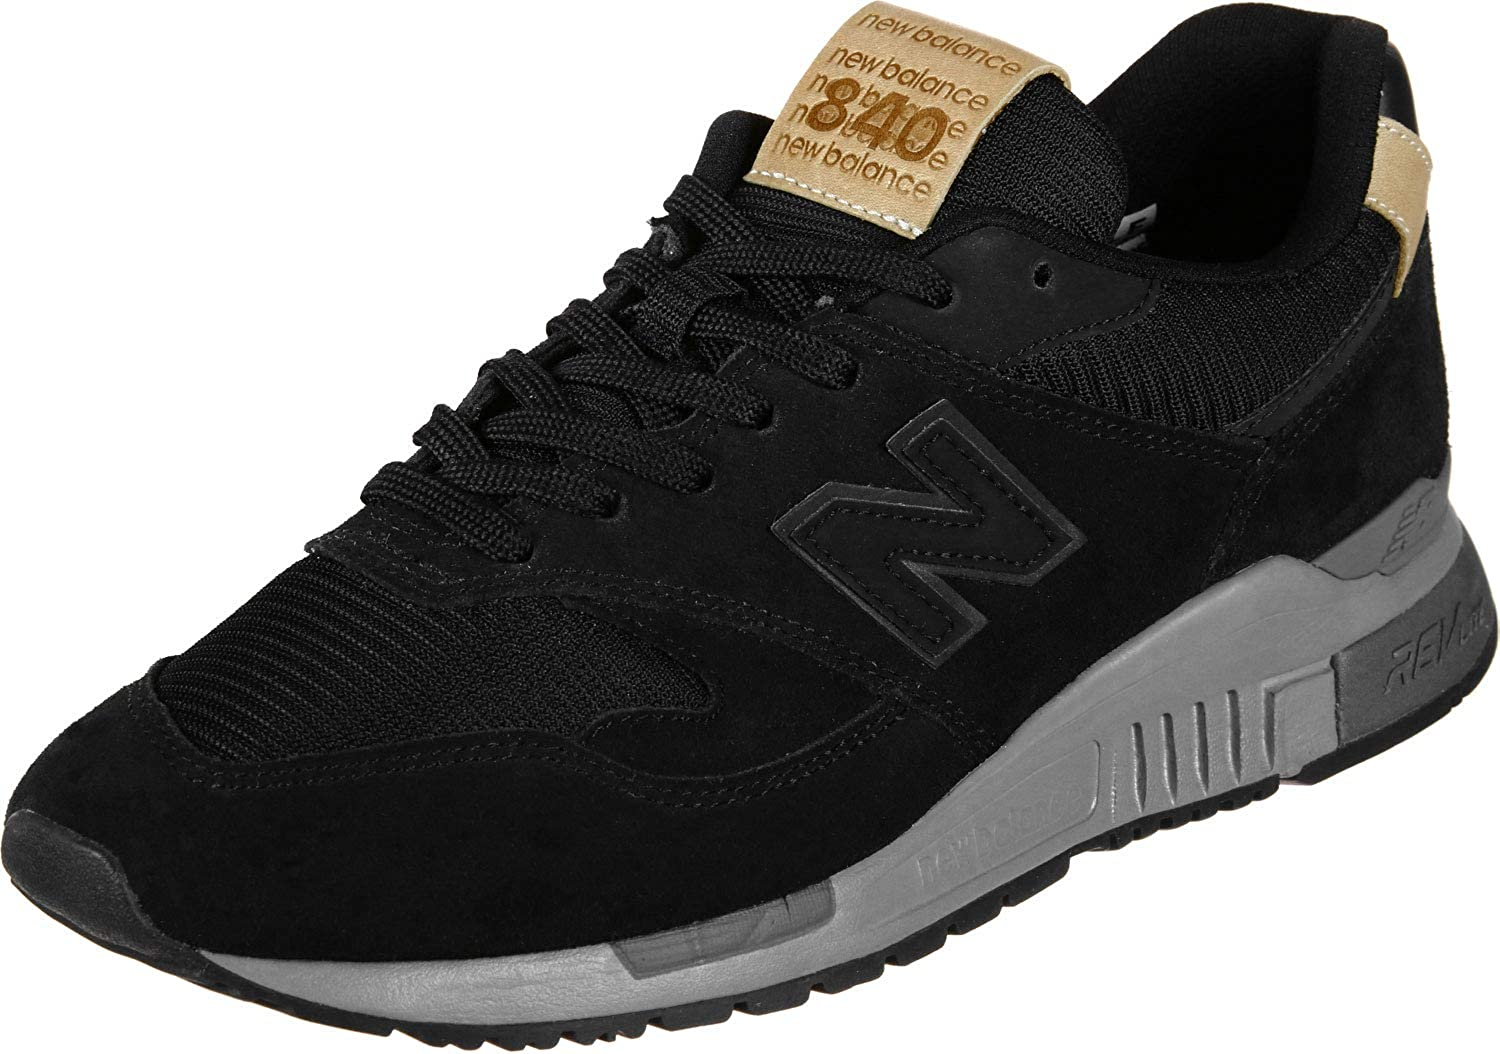 New Balance Men's 840 Running Shoes